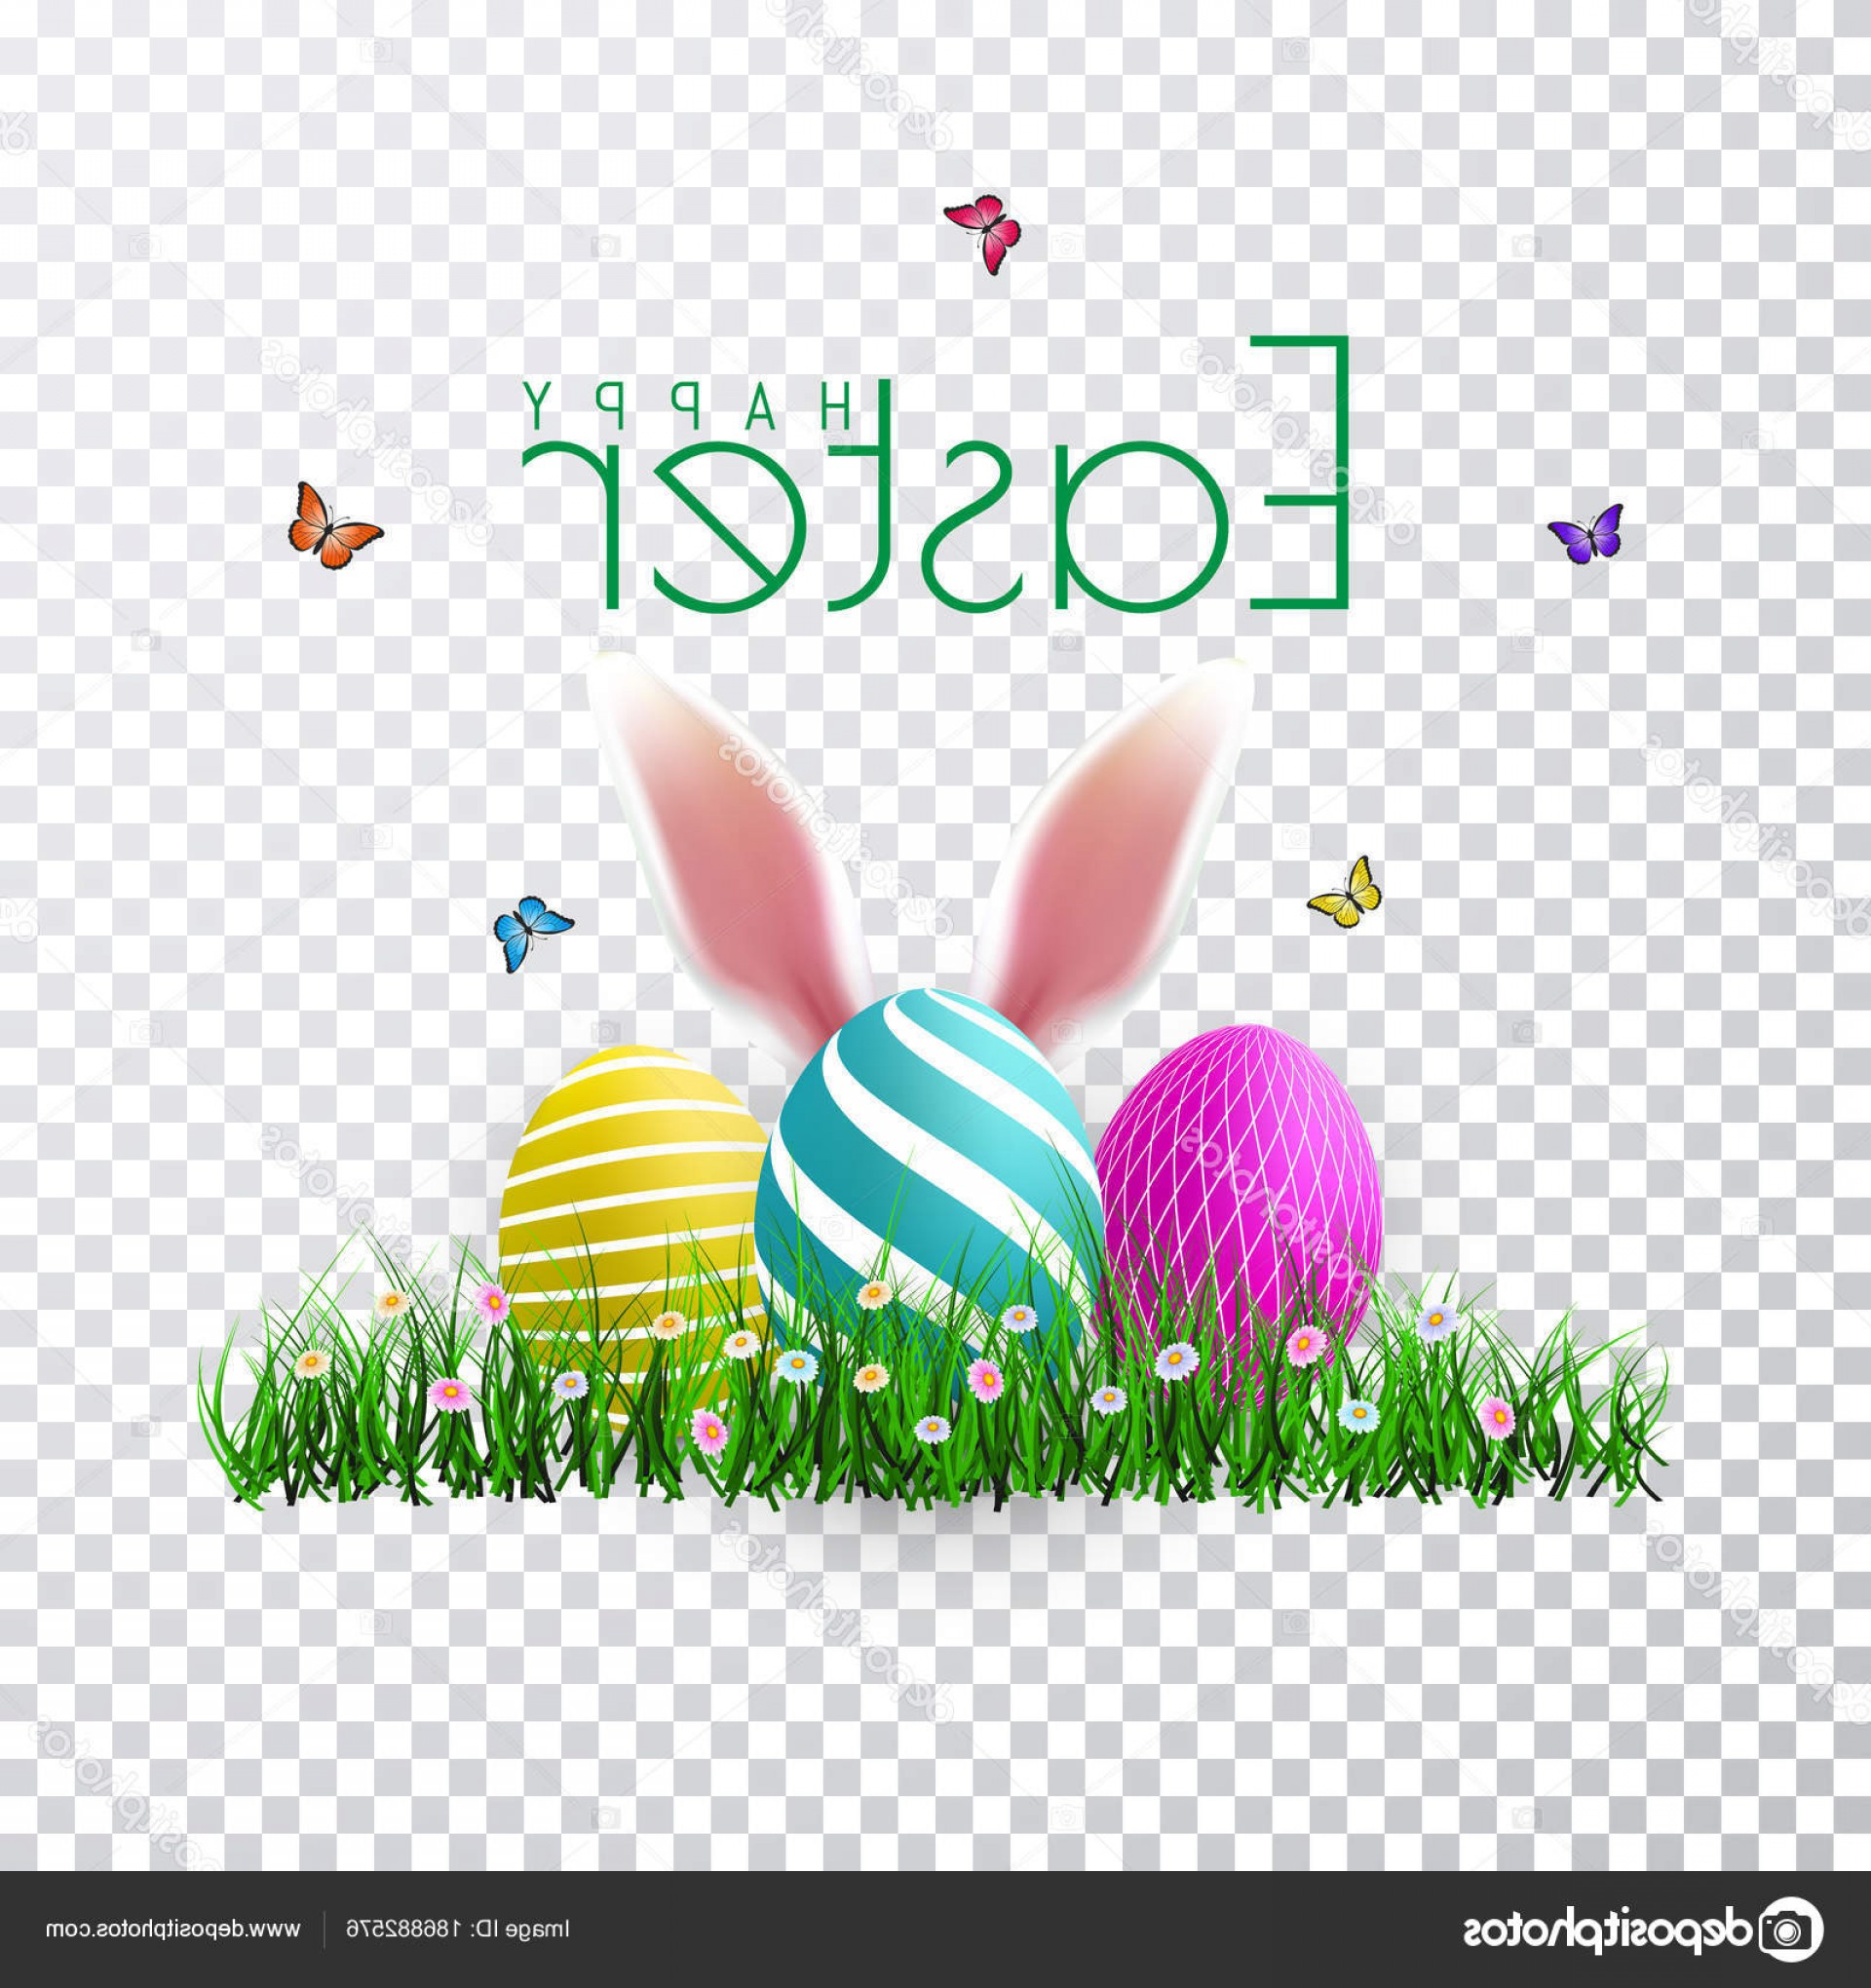 Easter Vector Art No Background: Stock Illustration Vector Easter Eggs With Grass